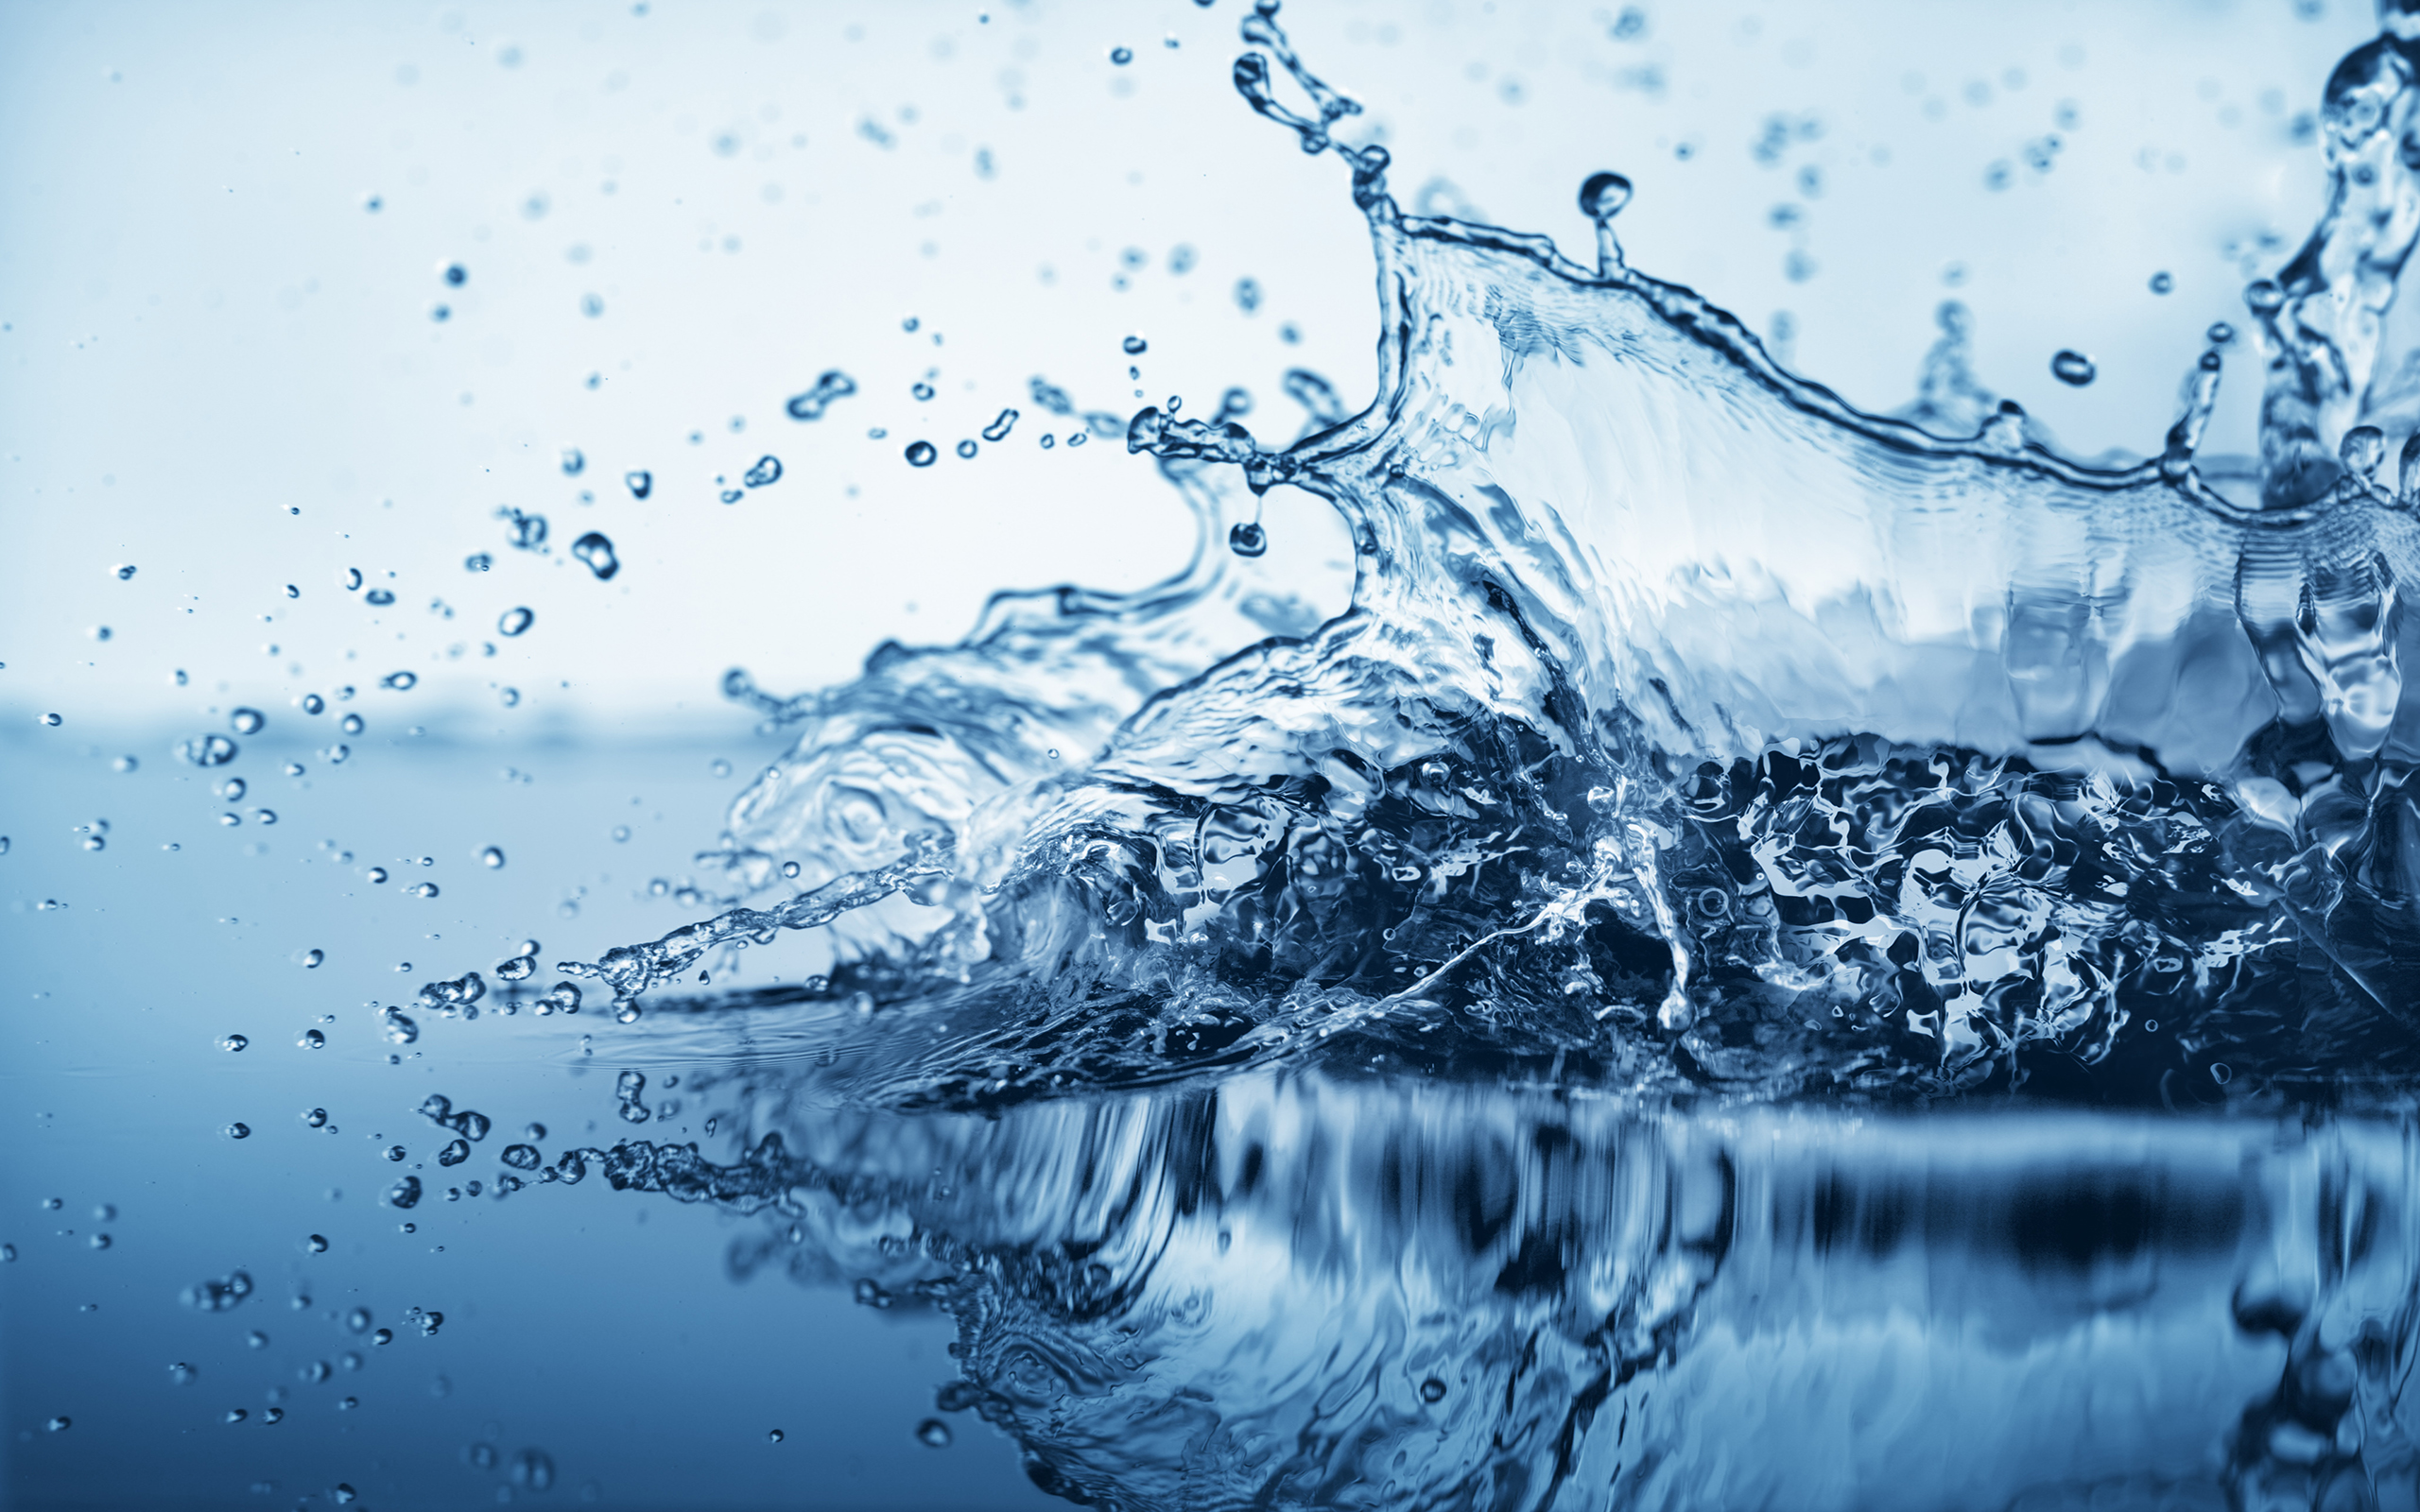 Water HD Wallpapers 2560x1600